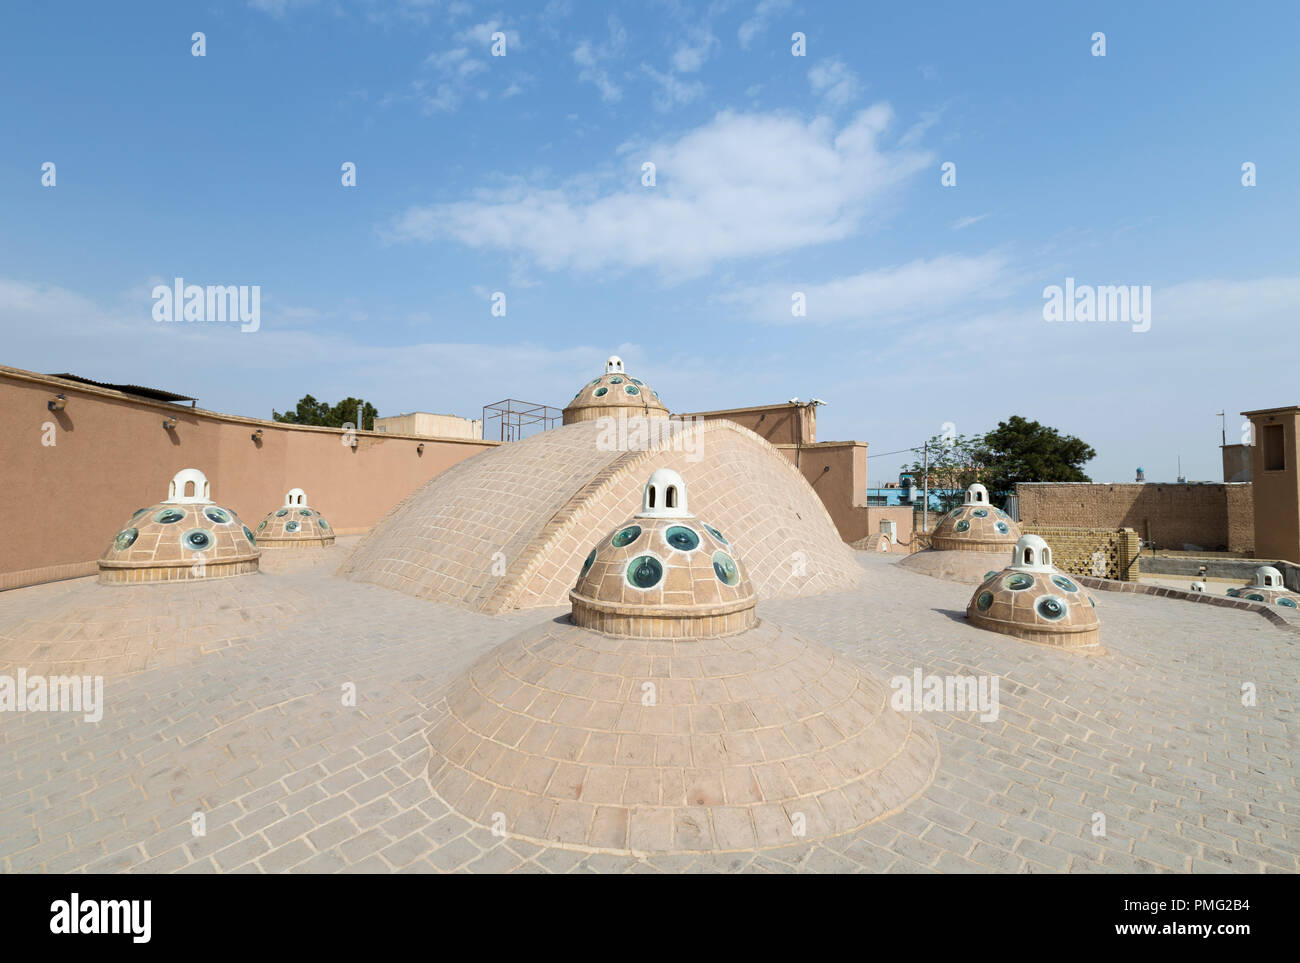 Roof of Sultan Mir Ahmed bathhouse, Kashan, Iran - Stock Image